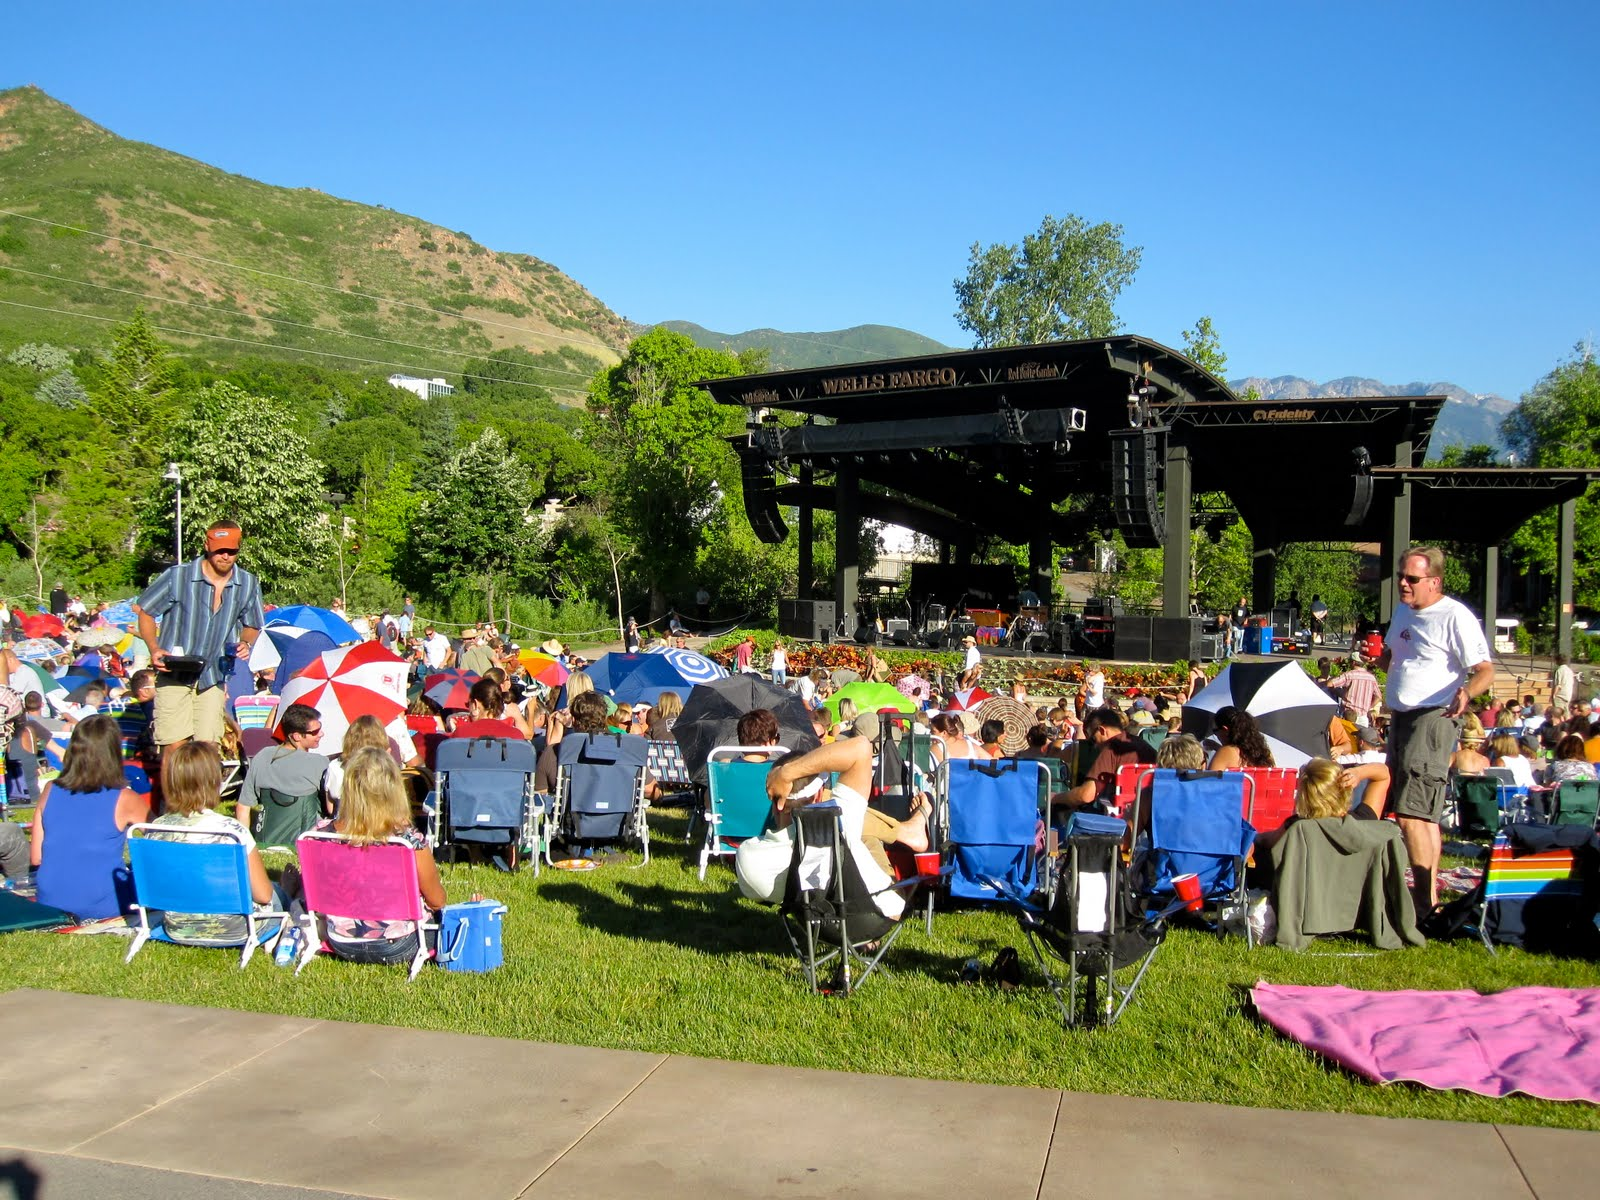 Amazing Last Night We Went To Our First Red Butte Garden Concert. We Had A Great  Time With Good Food, Great Friends, Nice Music, And An Incredible  Mountainous ...